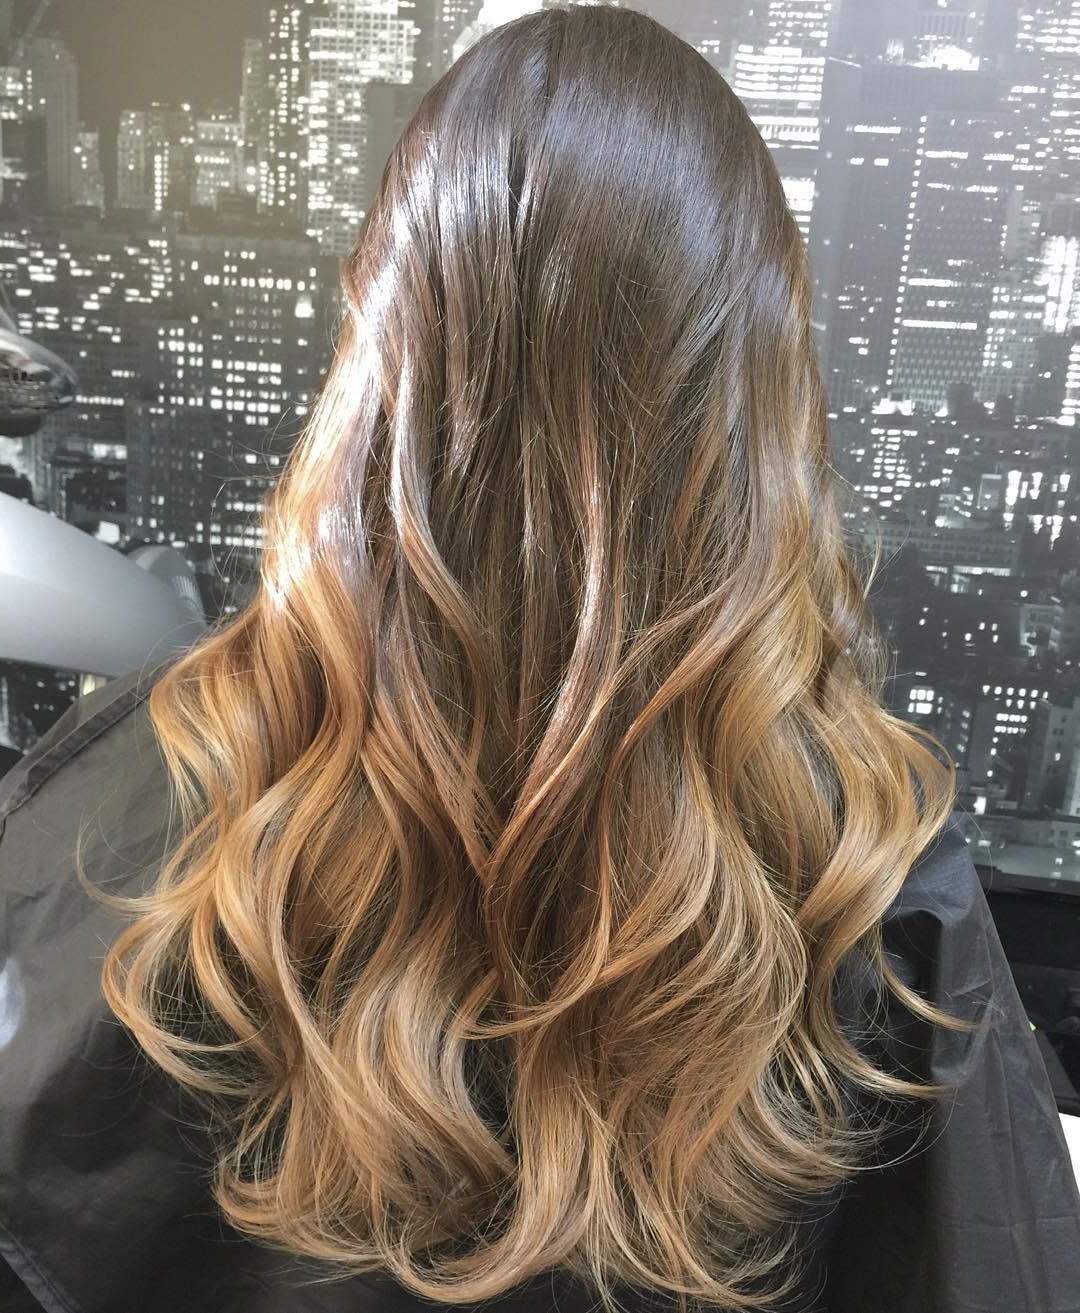 50 Ombre Hairstyles For Women – Ombre Hair Color Ideas 2019 With Newest Long Layered Ombre Hairstyles (View 6 of 20)